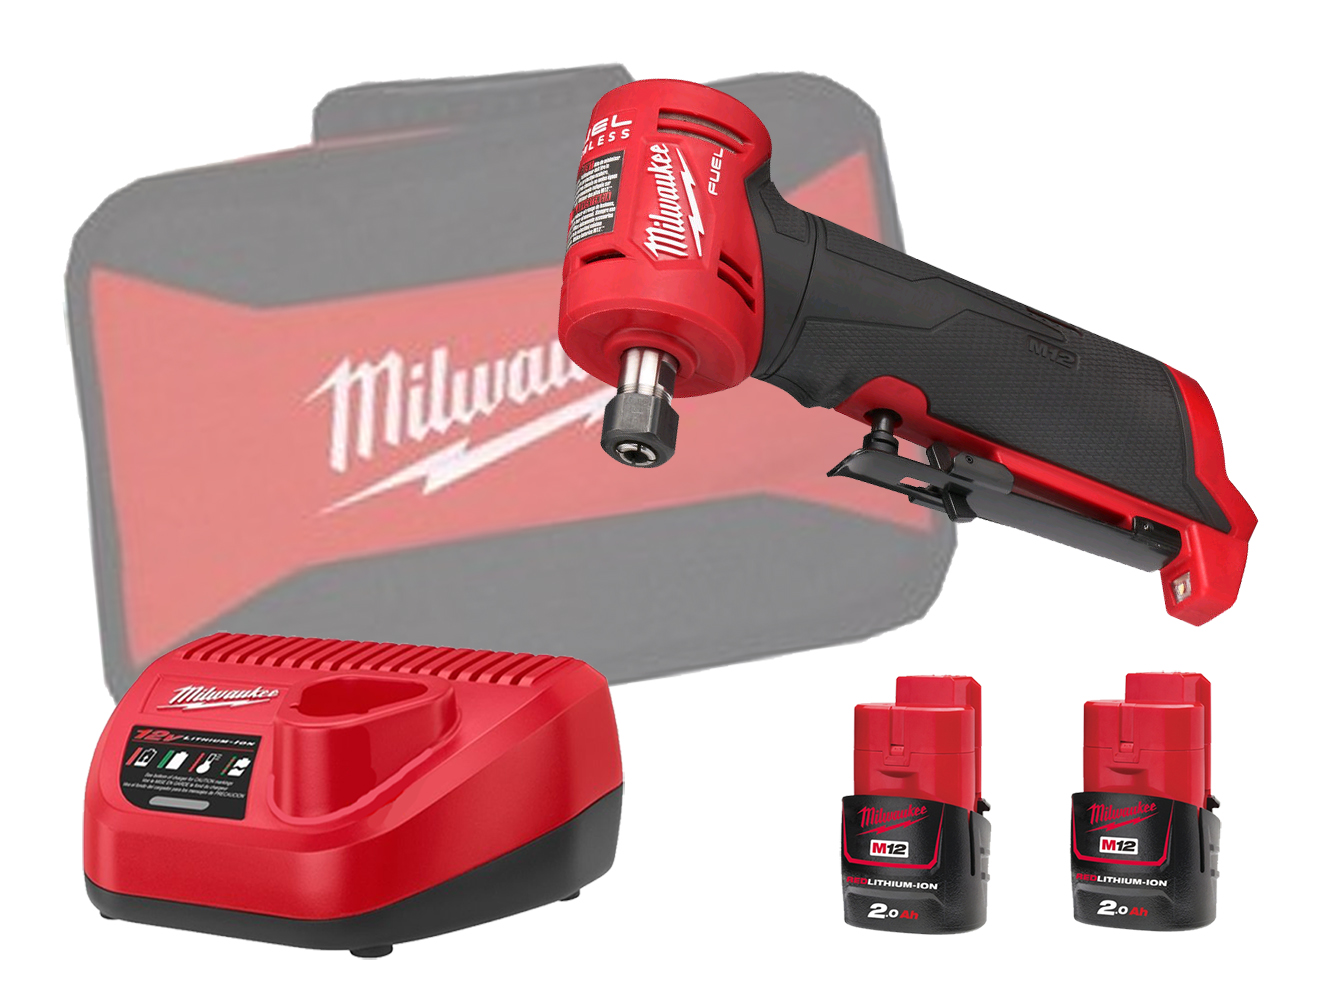 Milwaukee M12FDGA 12V FUEL Brushless Angled Die Grinder - 2.0ah Pack